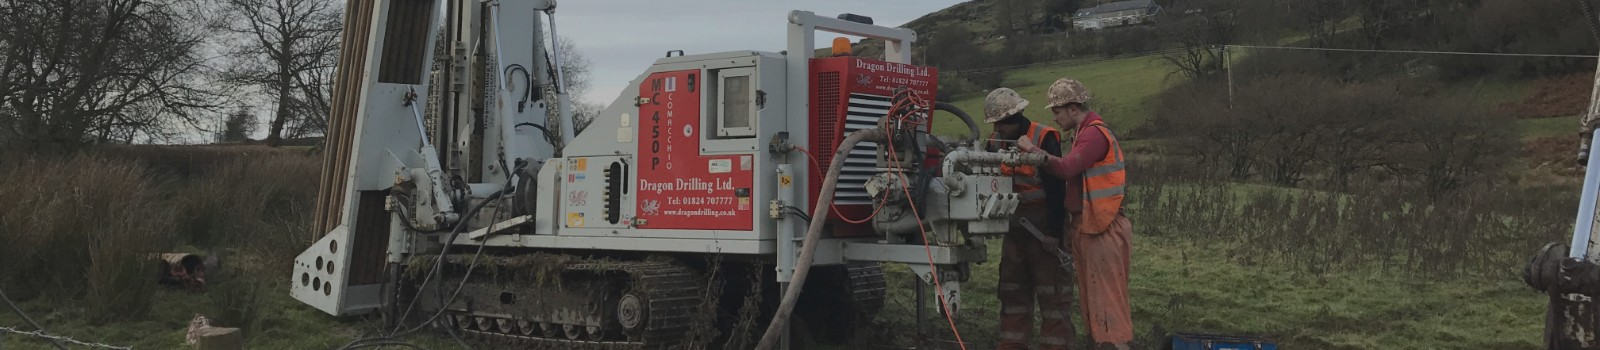 Borehole Drilling | Water Borehole Construction | Dragon Drilling